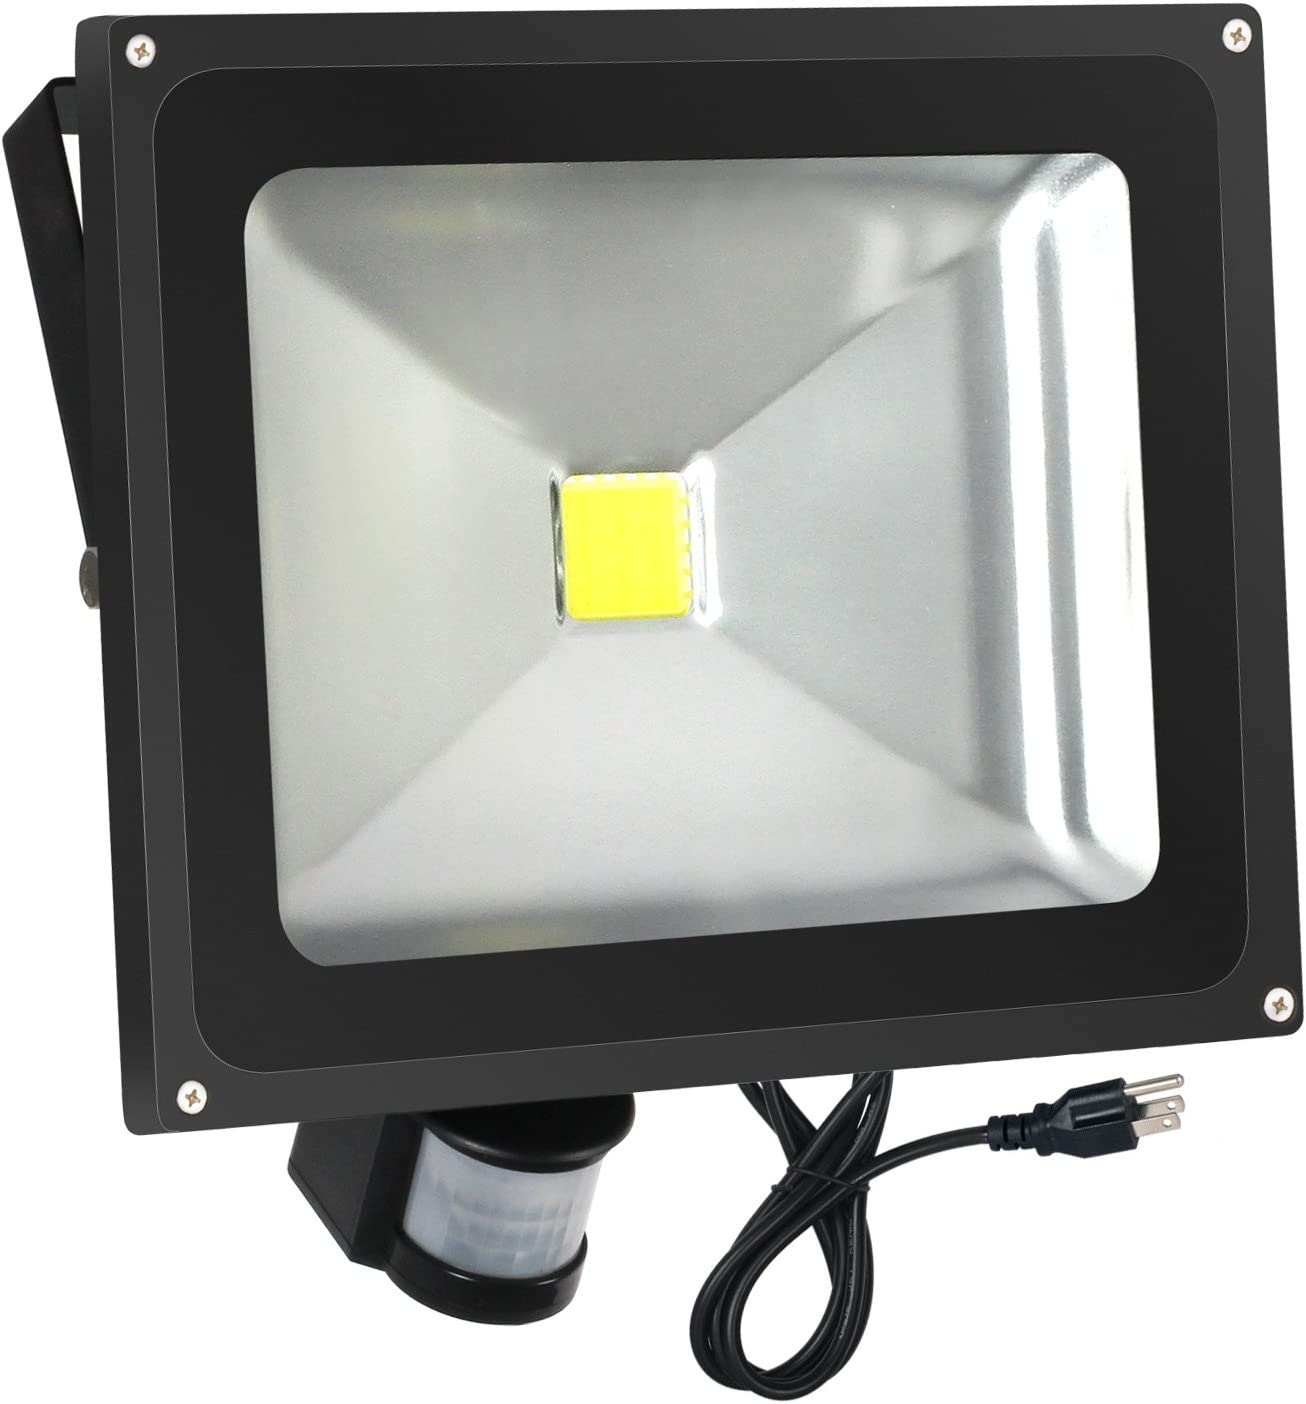 FAISHILAN Motion Sensor Flood Light 50W LED IP65 Waterproof Security Lights 6000K, 4000 Lumen, US 3-Plug Outdoor Wall Light